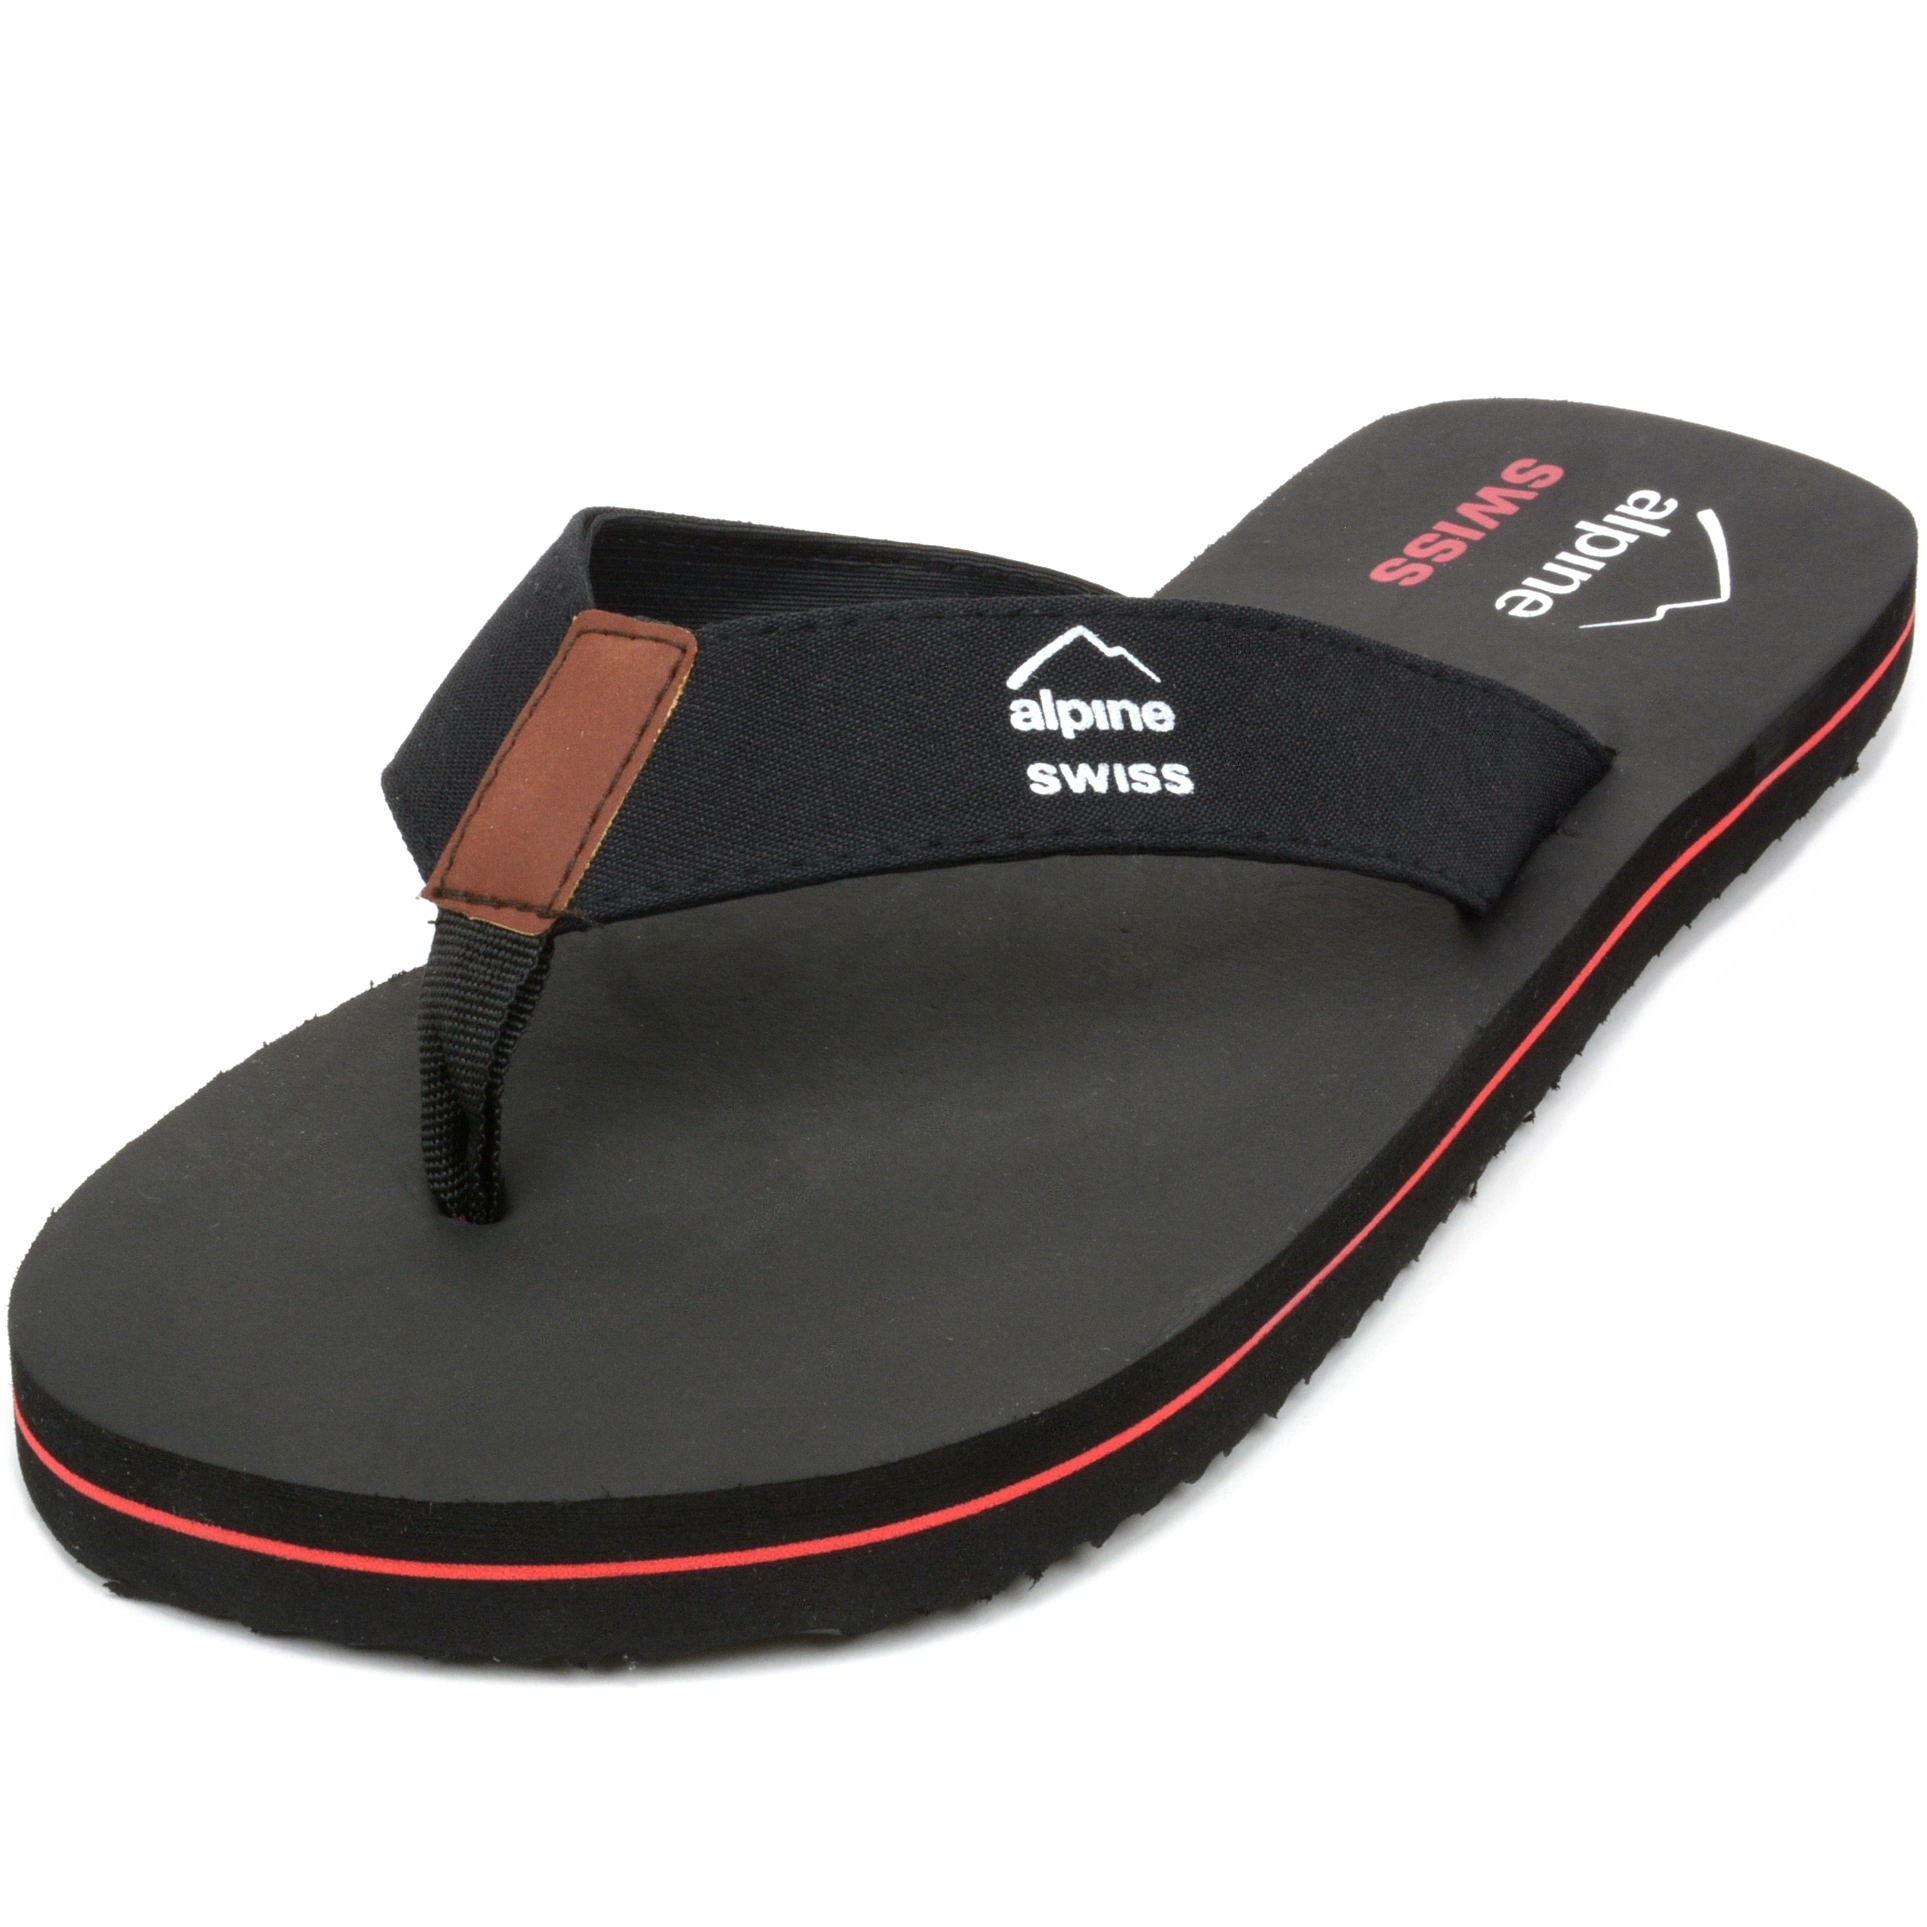 sandal shop for sandals zm s flops newport keen leather search flip most mens moosejaw comfortable men comforter